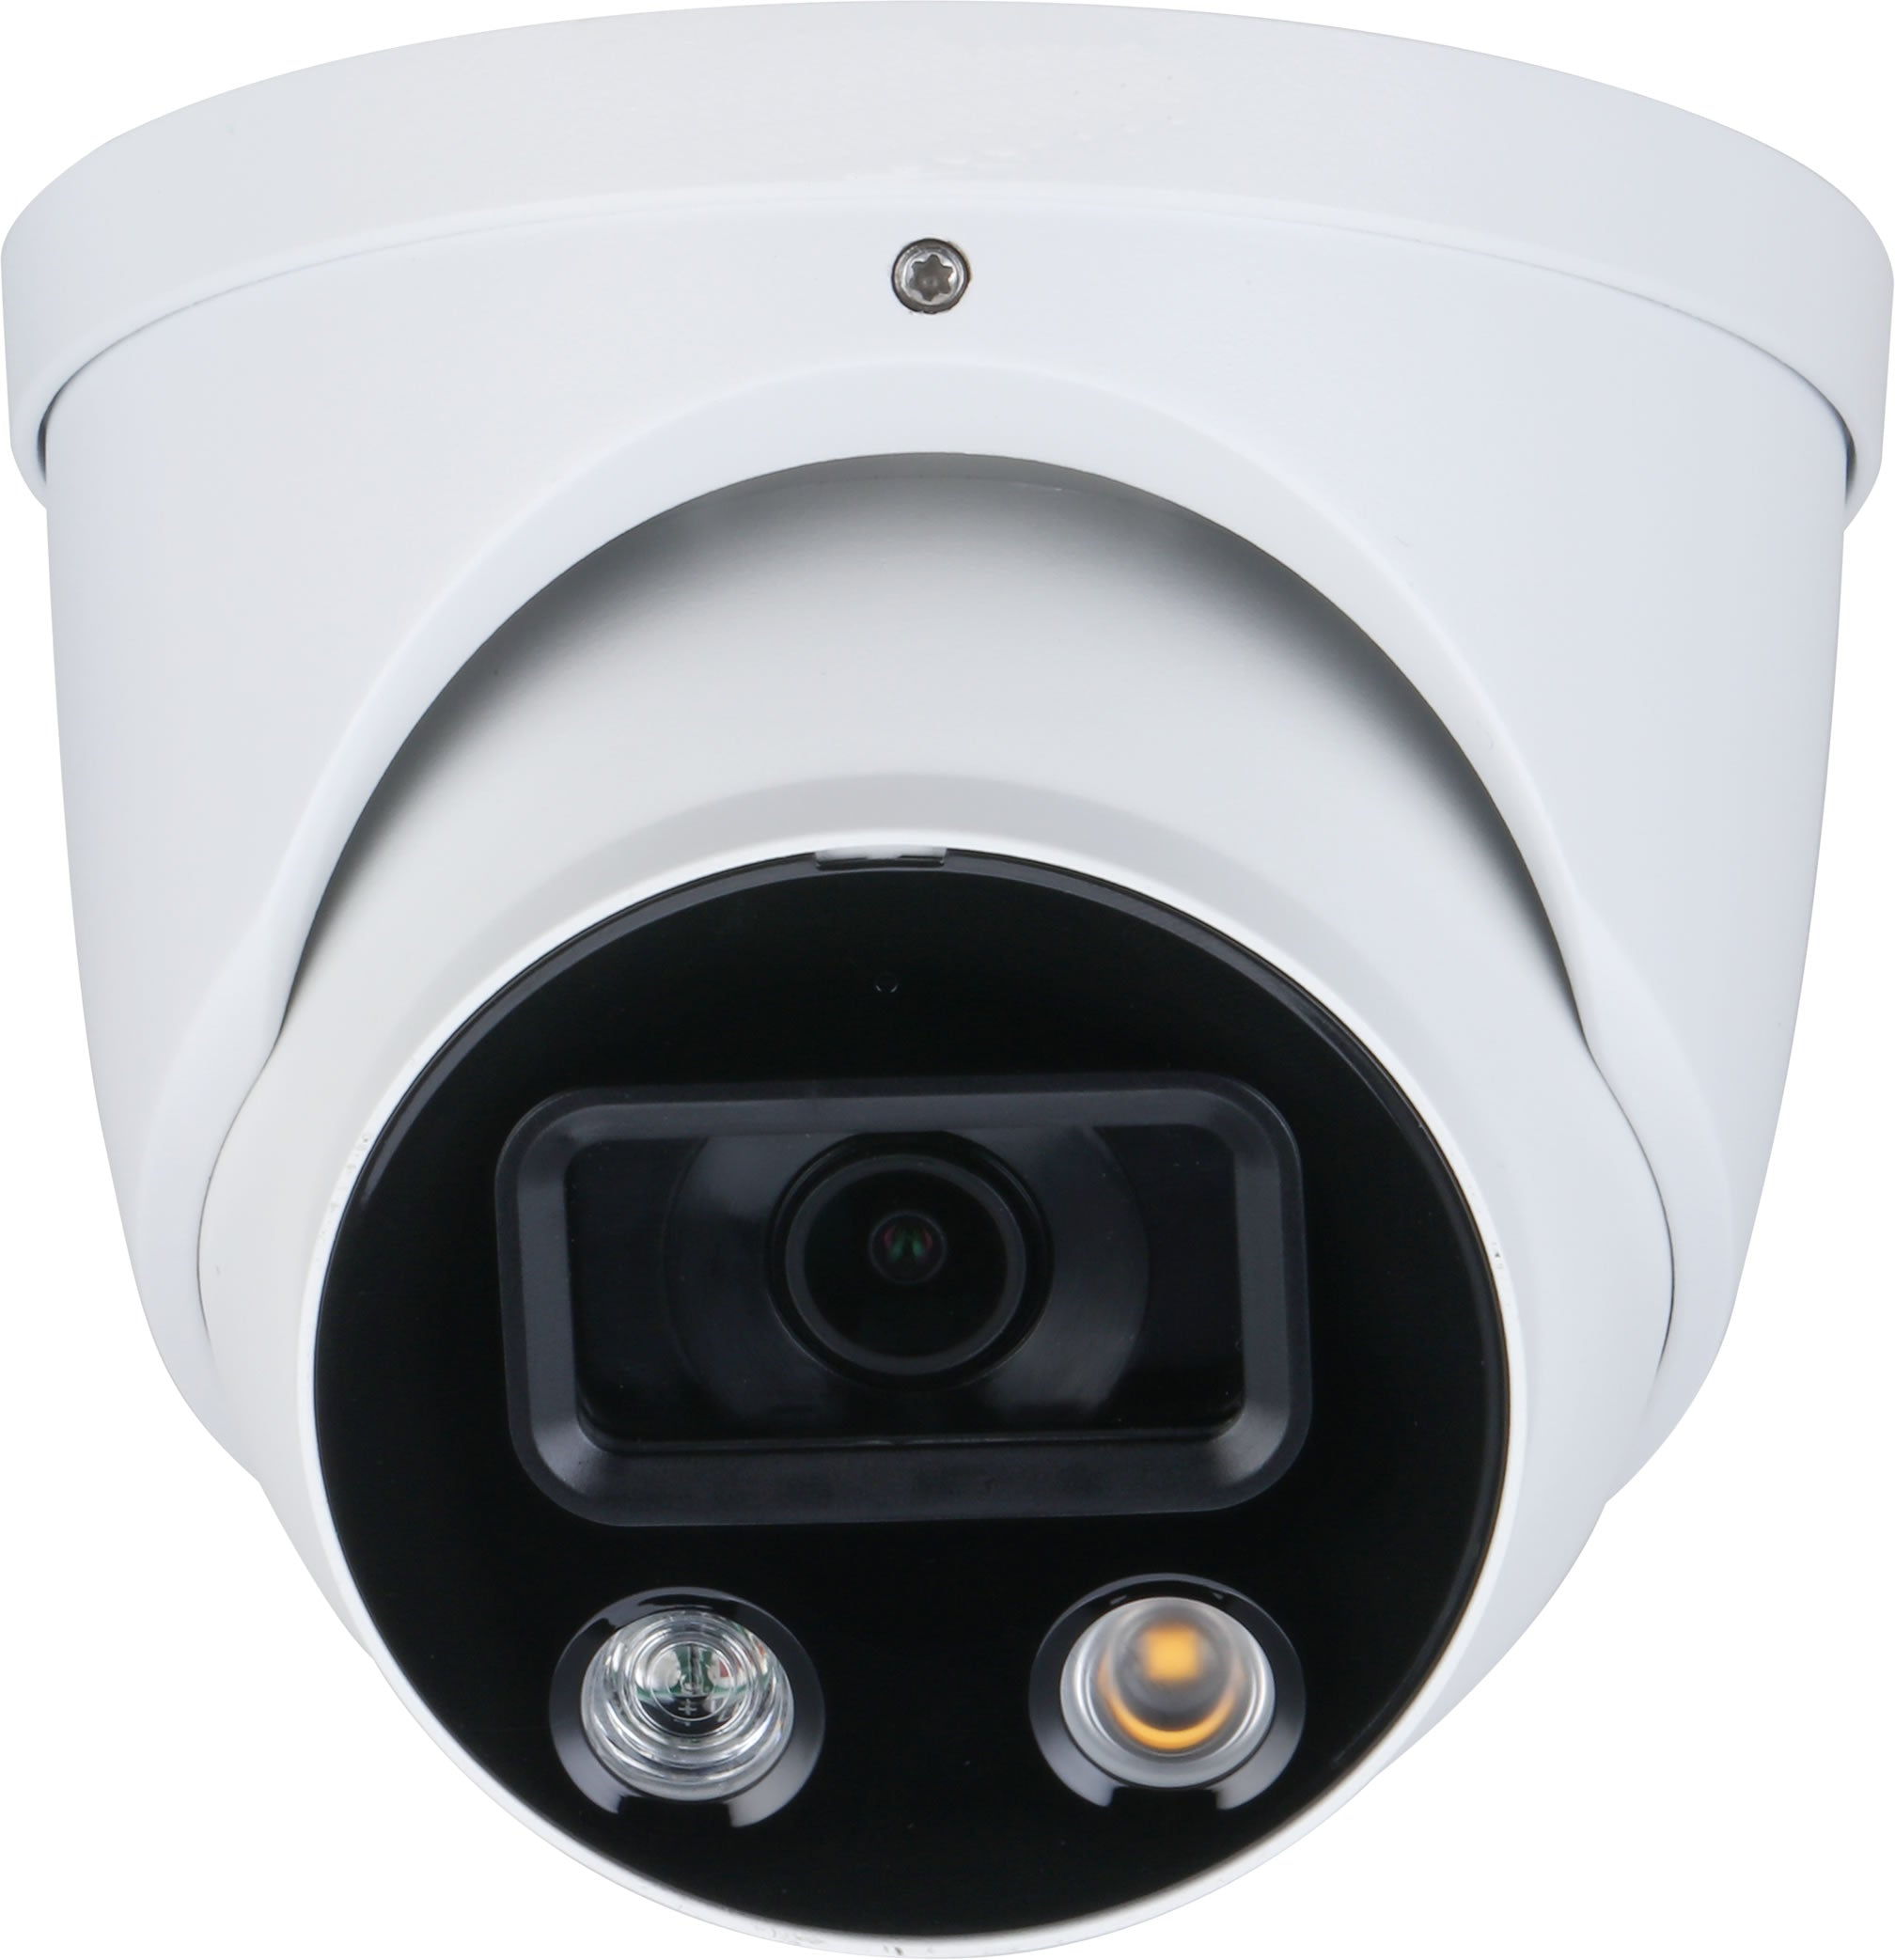 23-4D38A49H-ASP 8MP Full-color Active Deterrence Fixed-focal Eyeball Network Camera